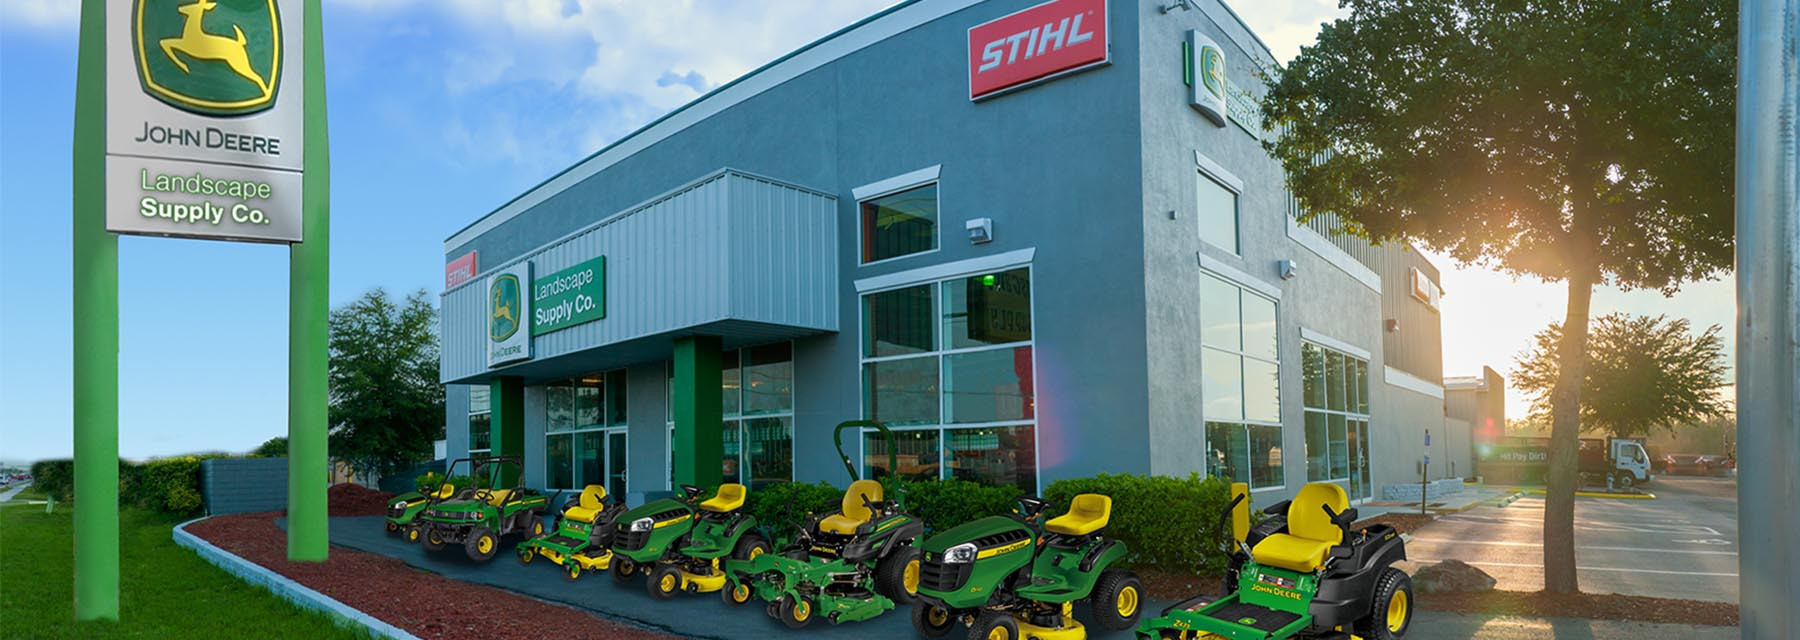 Landscape Supply Co  | John Deere | Stihl | Honda Dealer